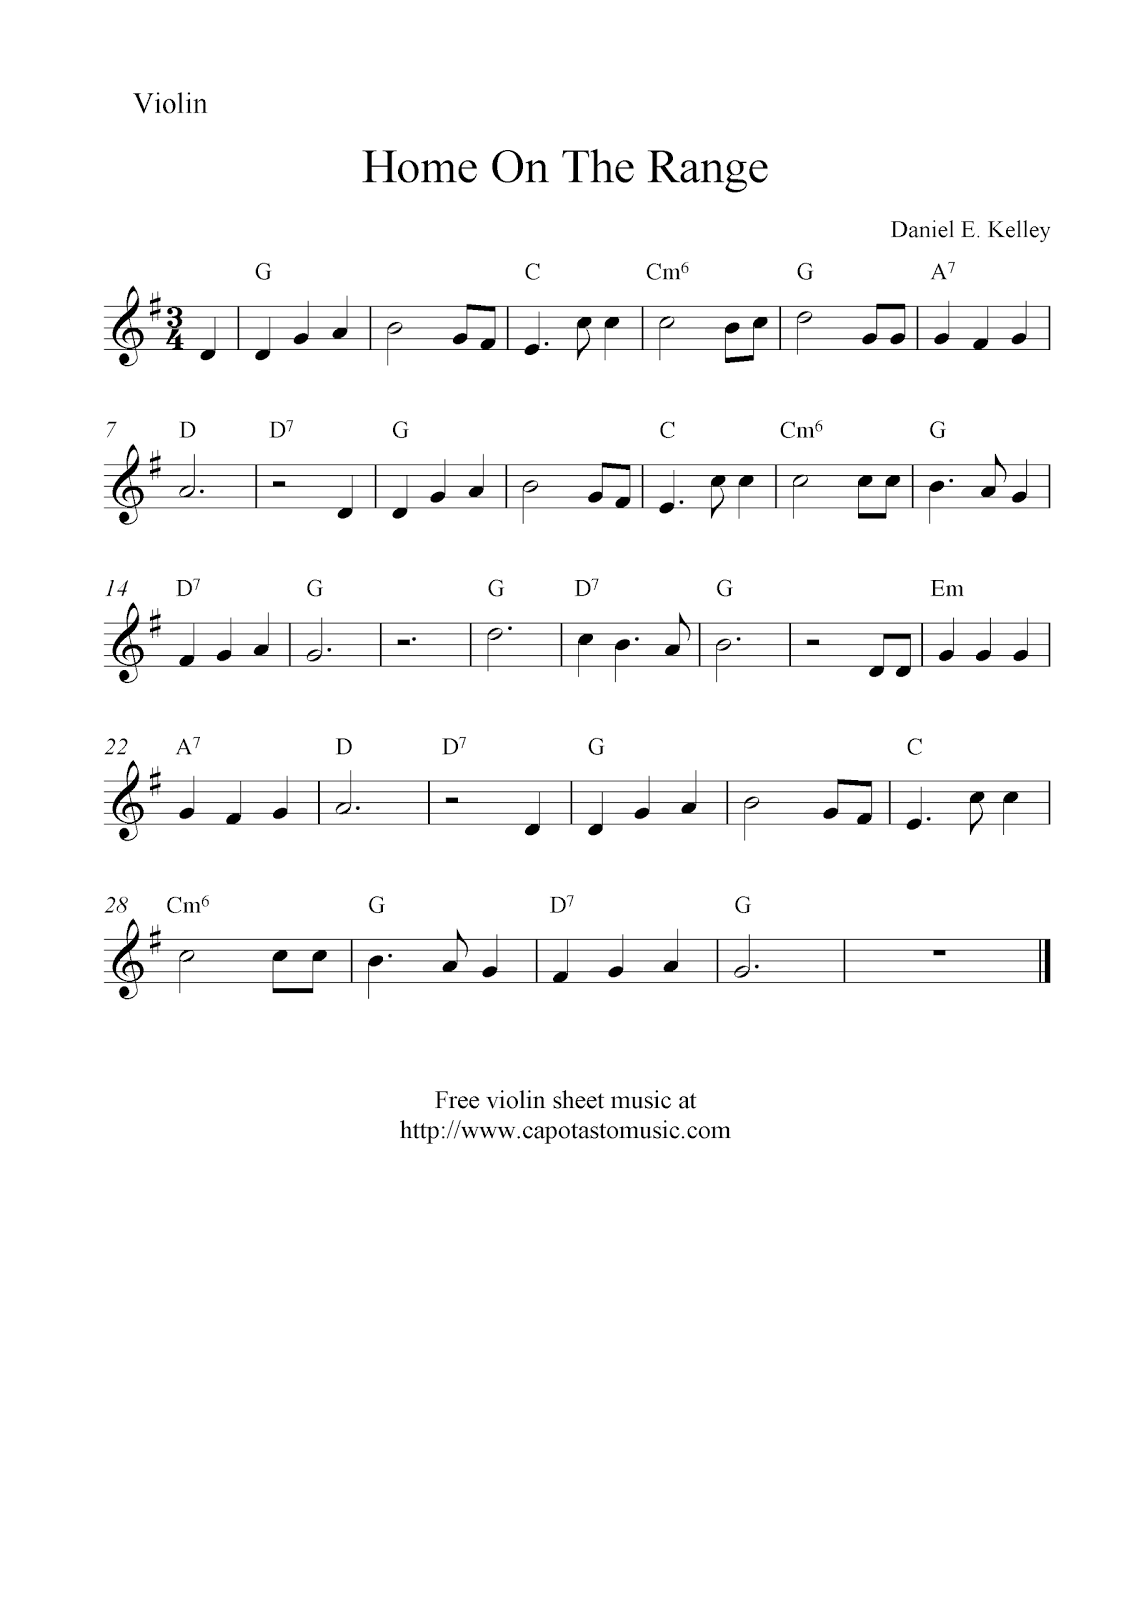 It's just an image of Gorgeous Printable Violin Sheet Music